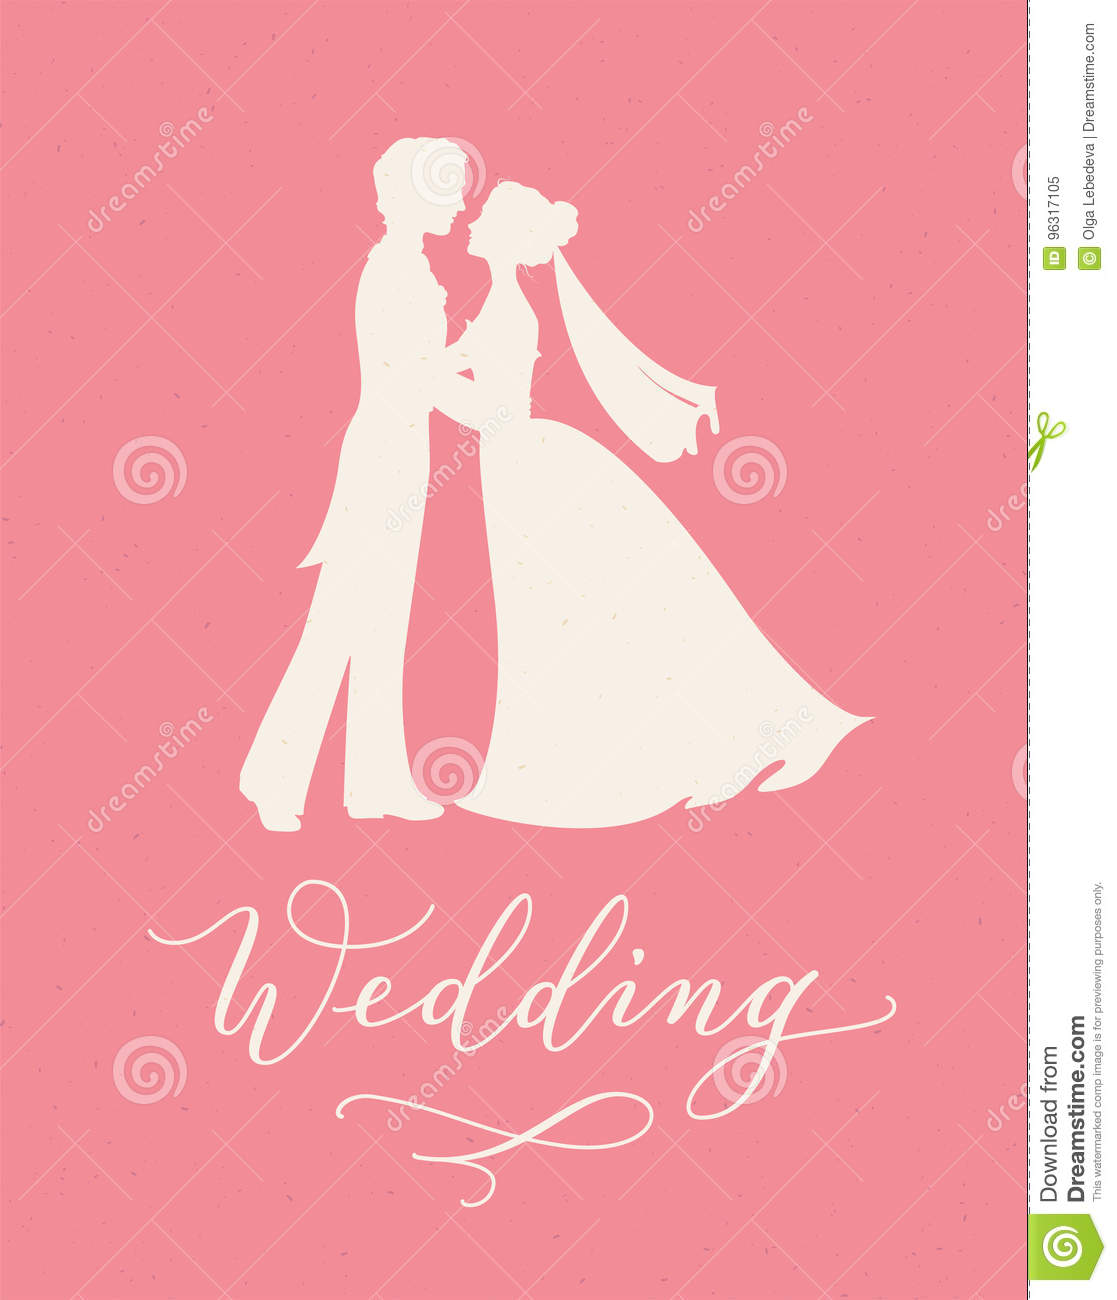 Wedding Design Concept With Bride And Groom Silhouettes And Hand ...